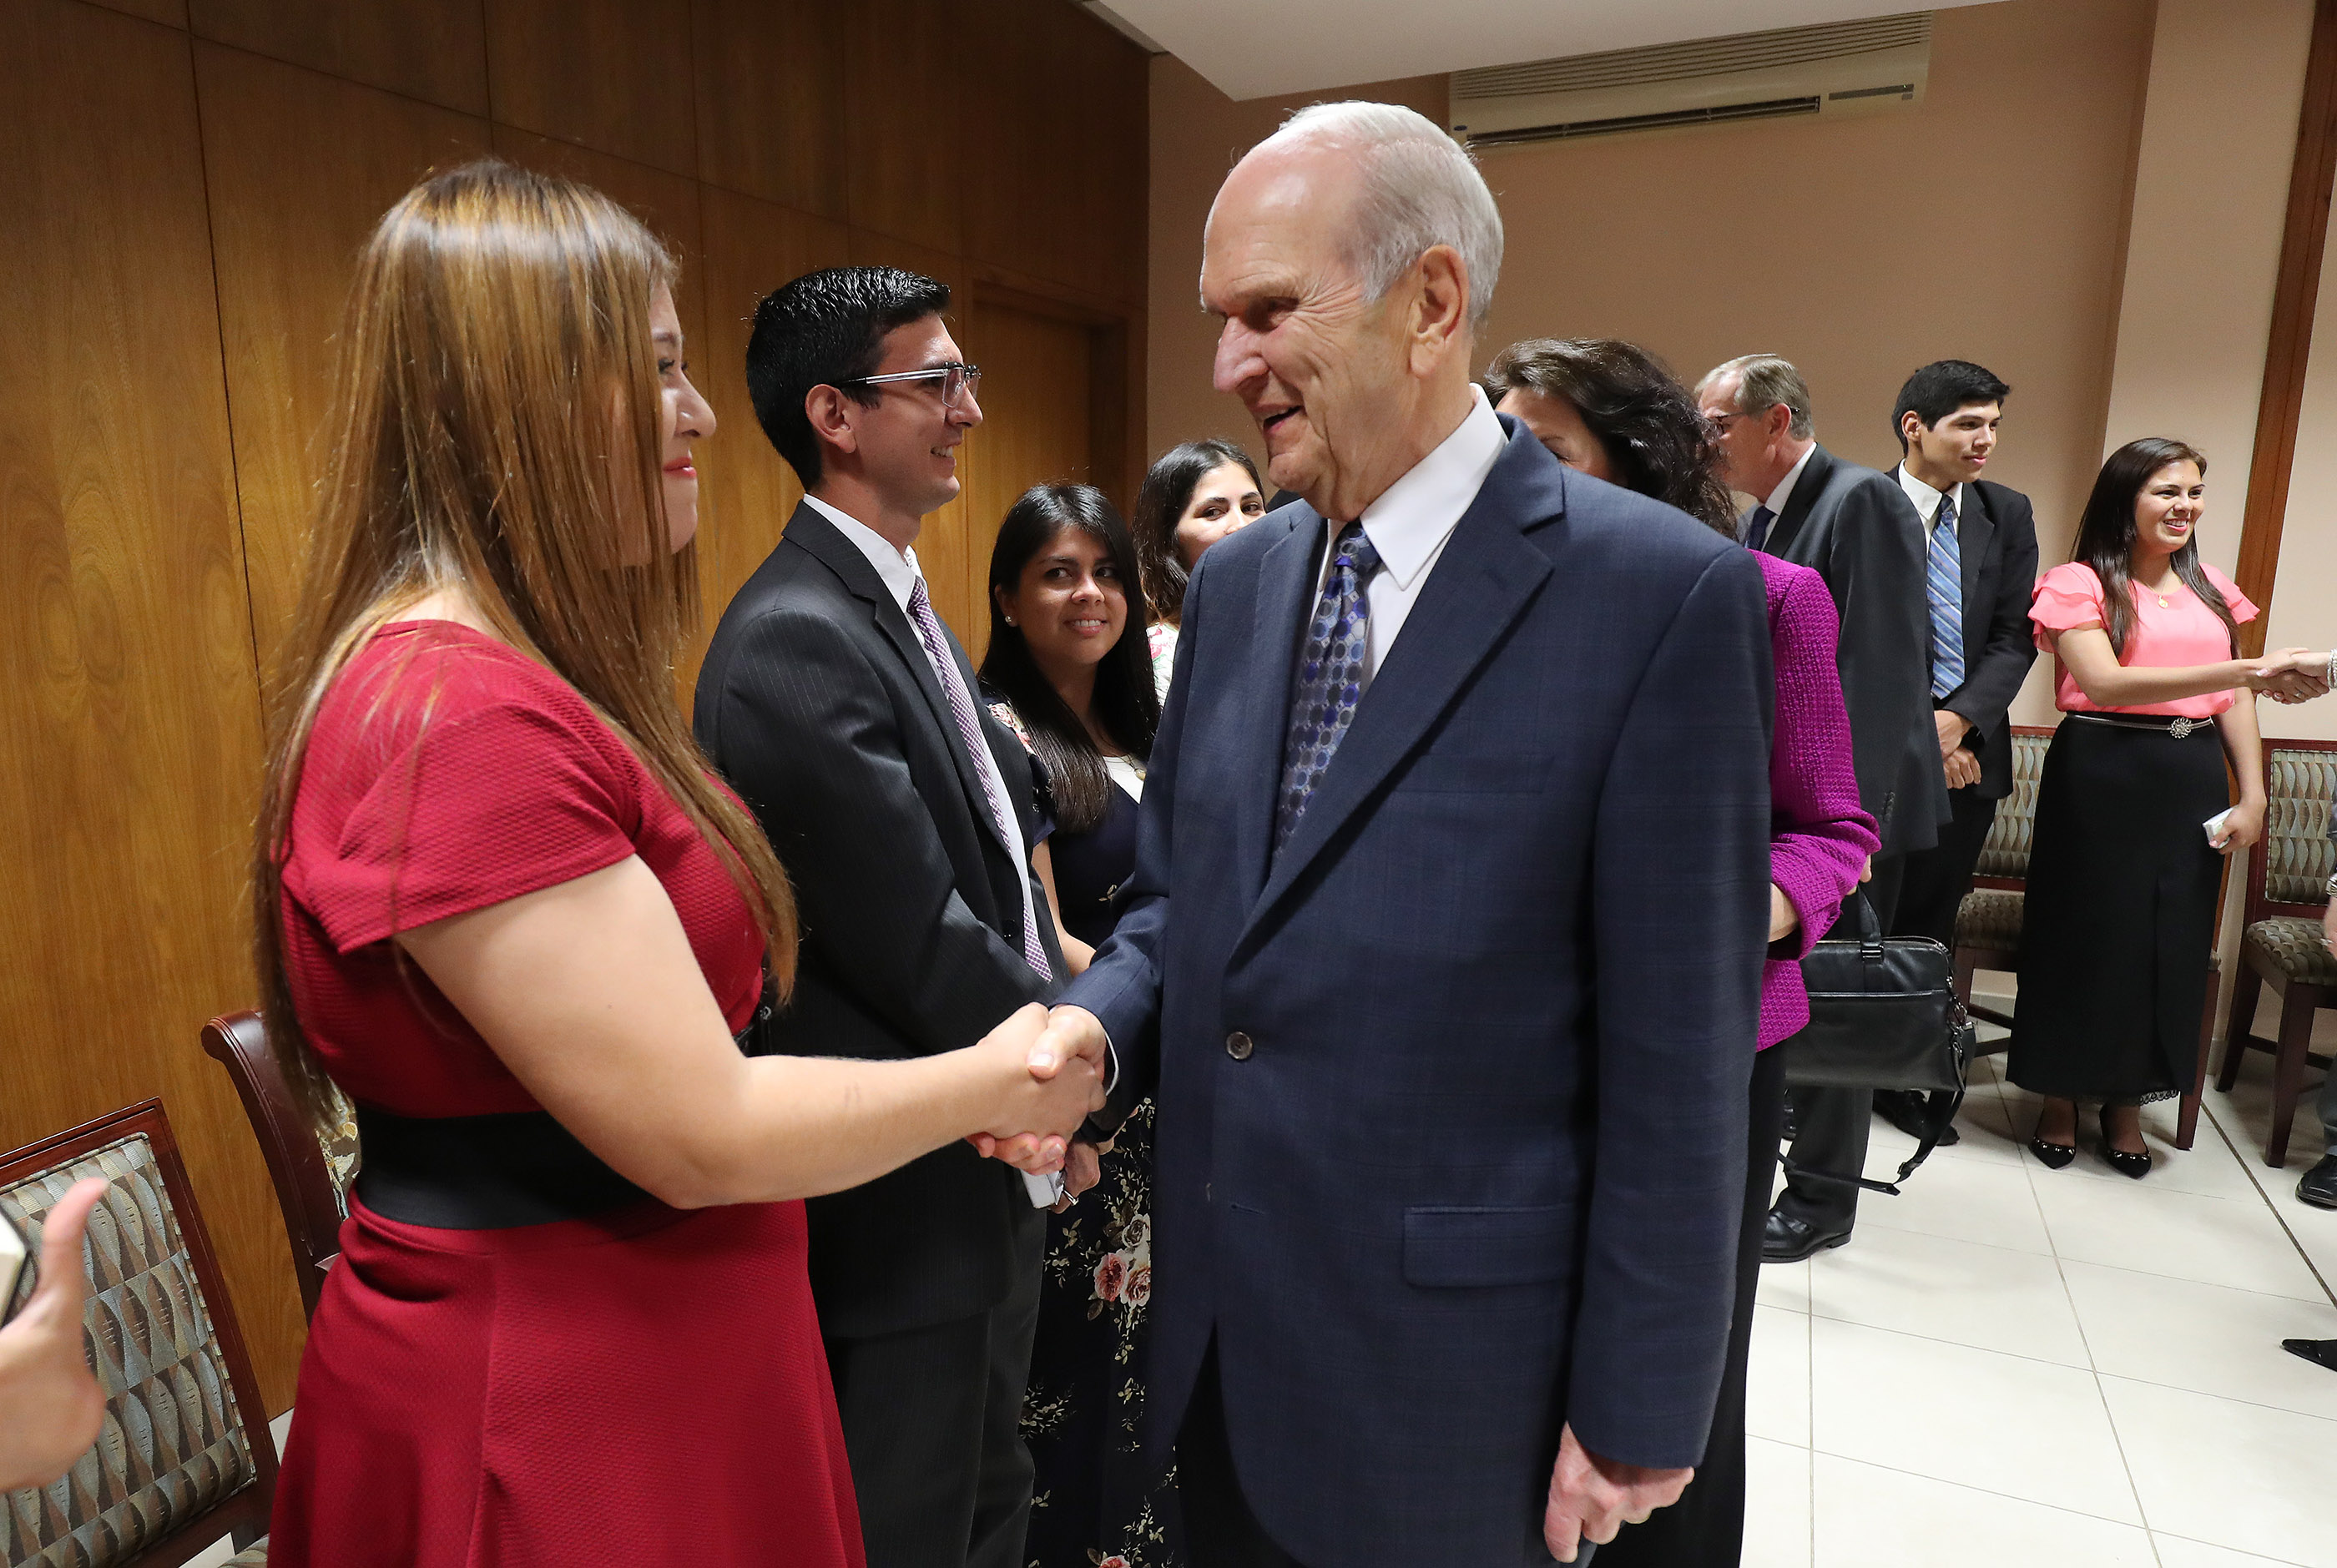 President Russell M. Nelson of The Church of Jesus Christ of Latter-day Saints talks with Fernanda Campos prior to a devotional in Asuncion, Paraguay, on Monday, Oct. 22, 2018.